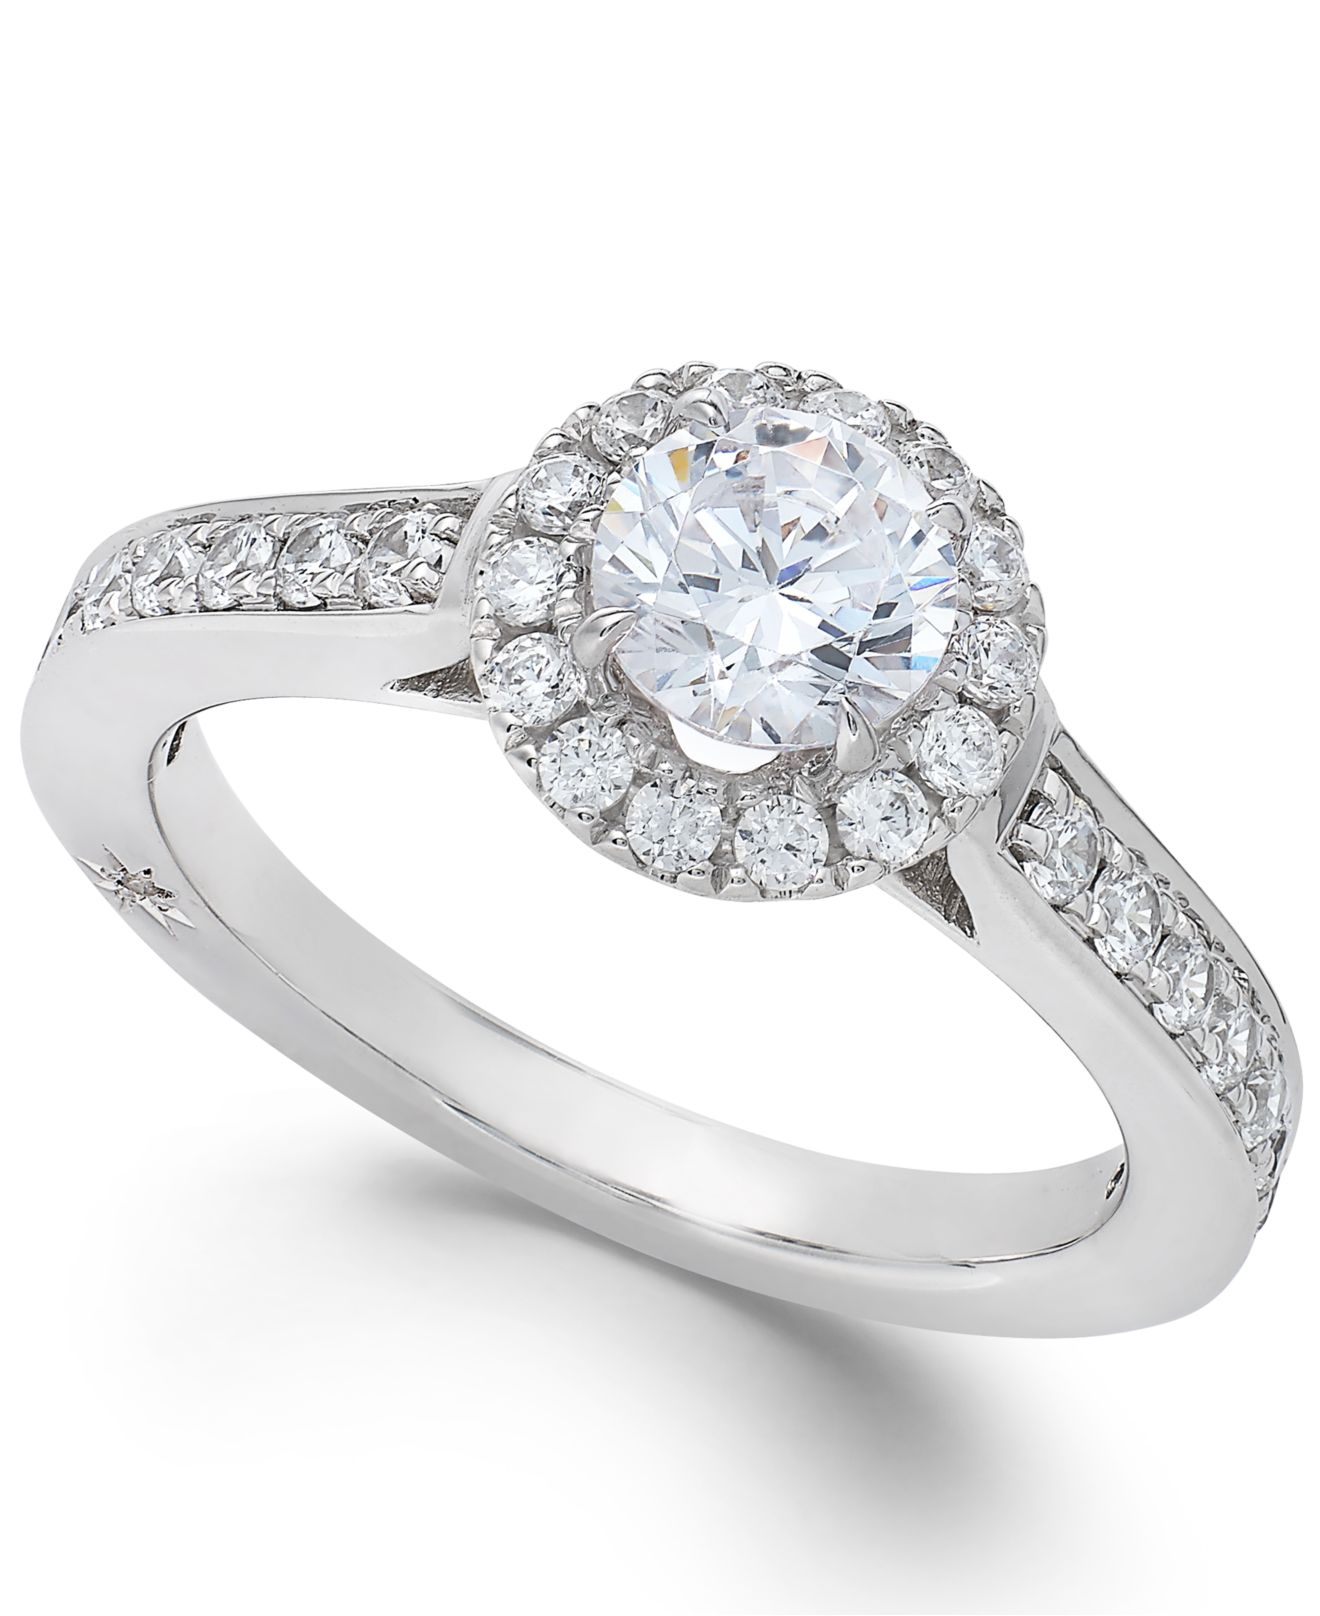 Marchesa Estate Halo By Certified Diamond Engagement Ring In 18k White Gold